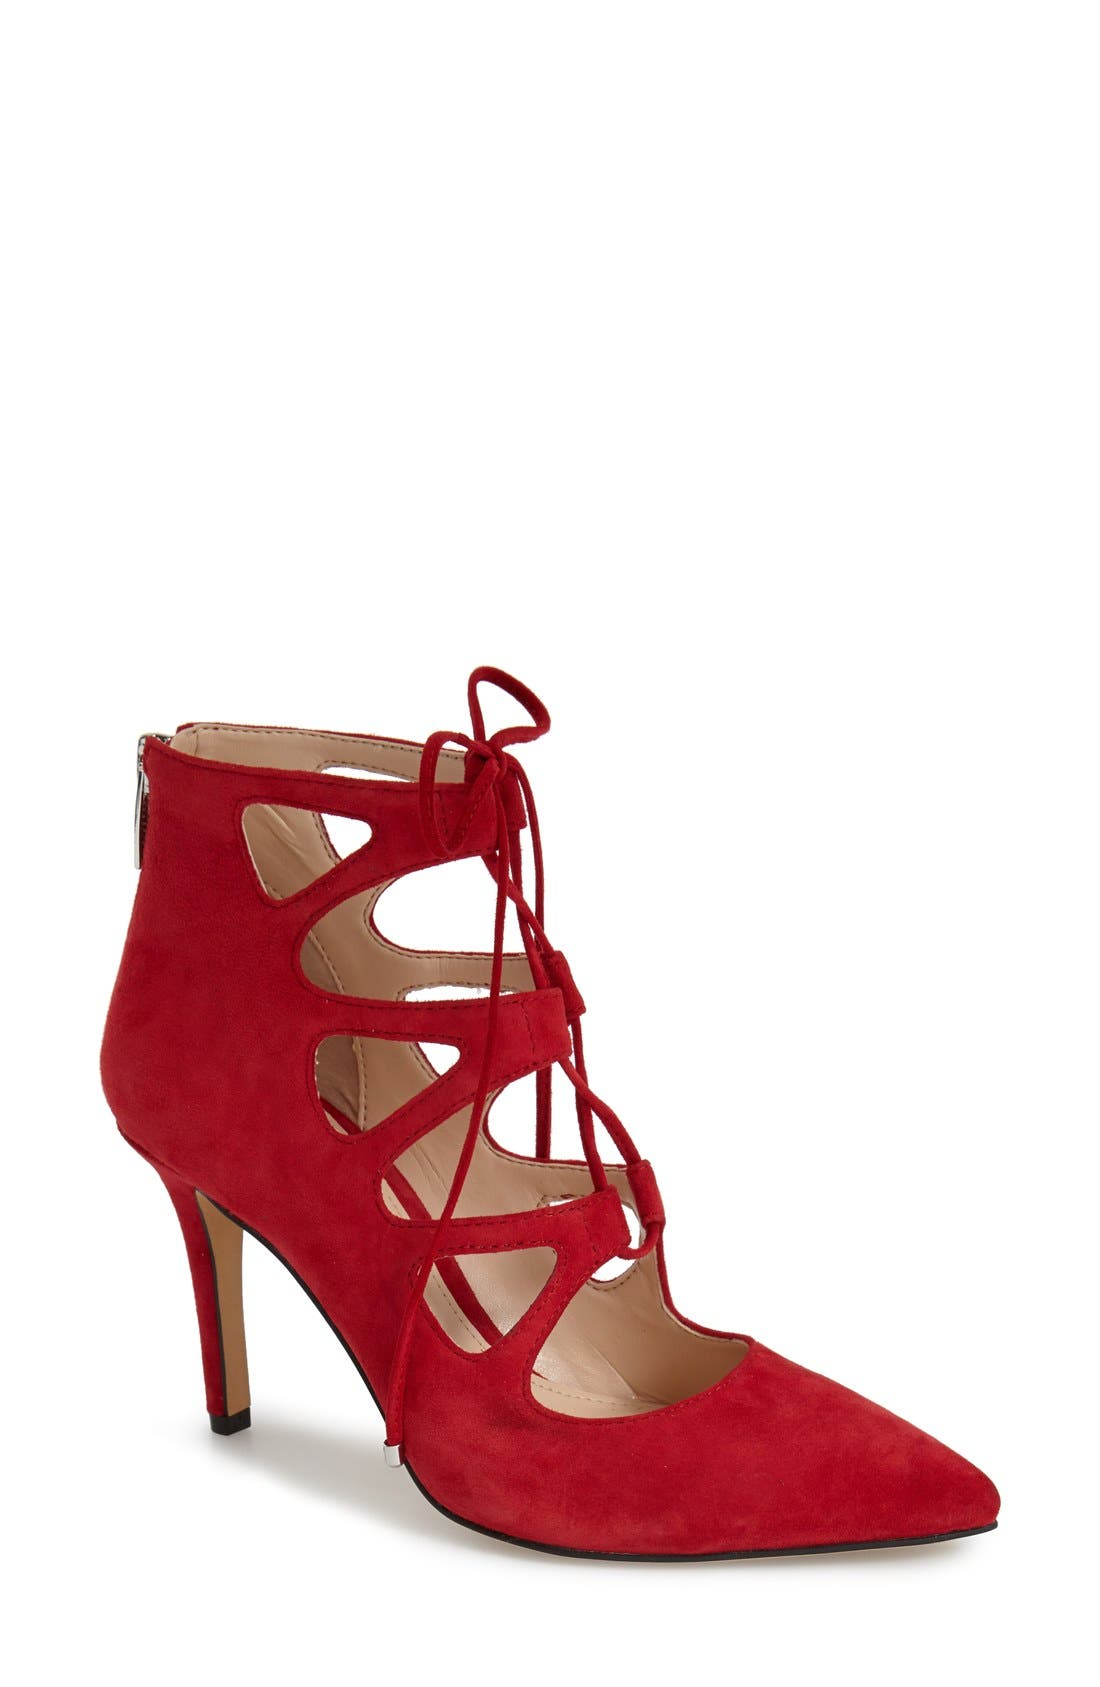 Main Image - Vince Camuto 'Bodell' Lace Up Pump (Women)